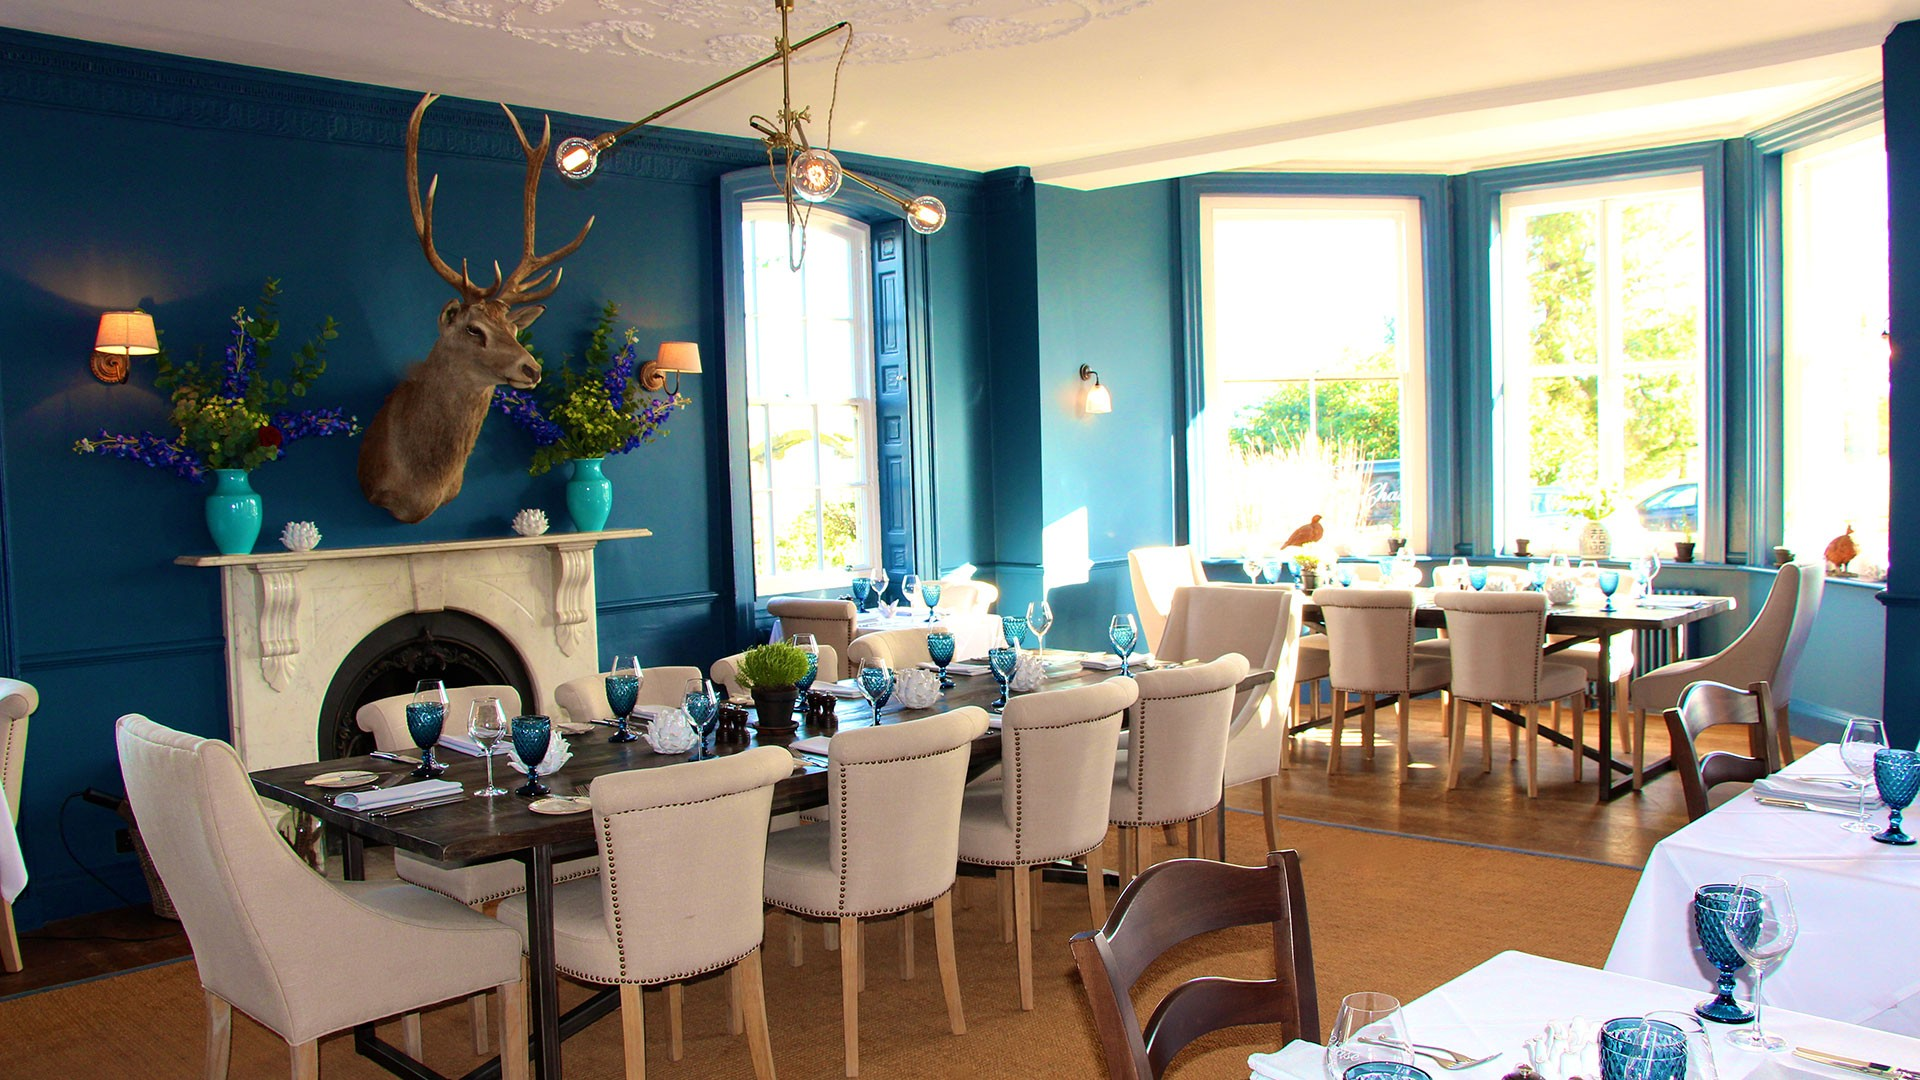 The dinning room at Verzon House in Ledbury, Herefordshire